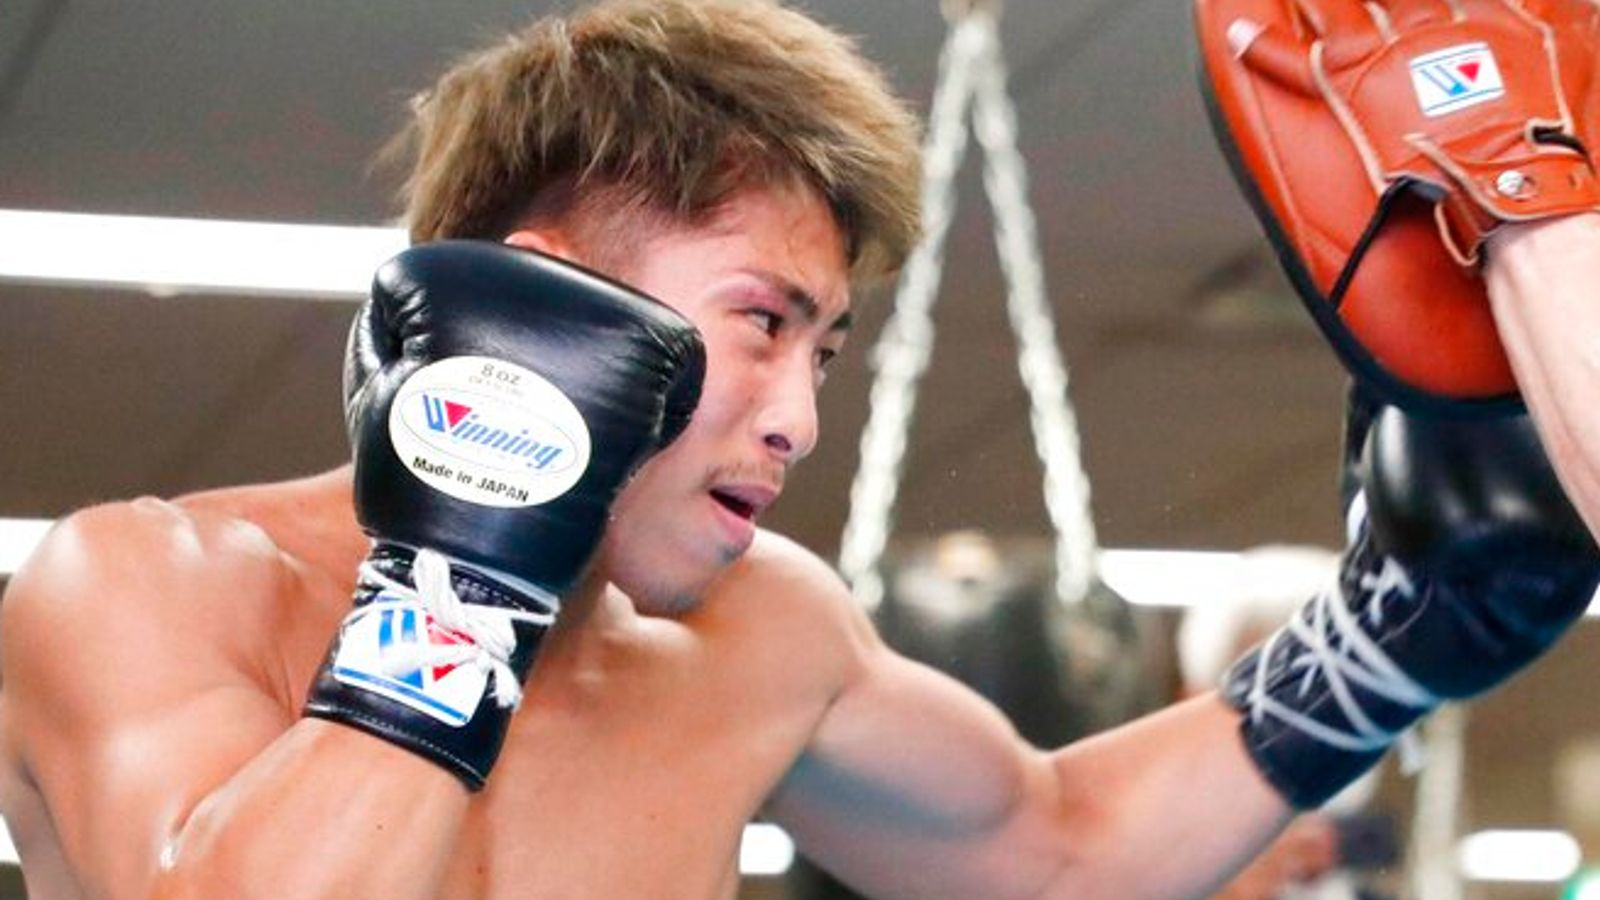 Is this the new Manny Pacquiao? Naoya Inoue has the explosive KO power but can he become a worldwide superstar?